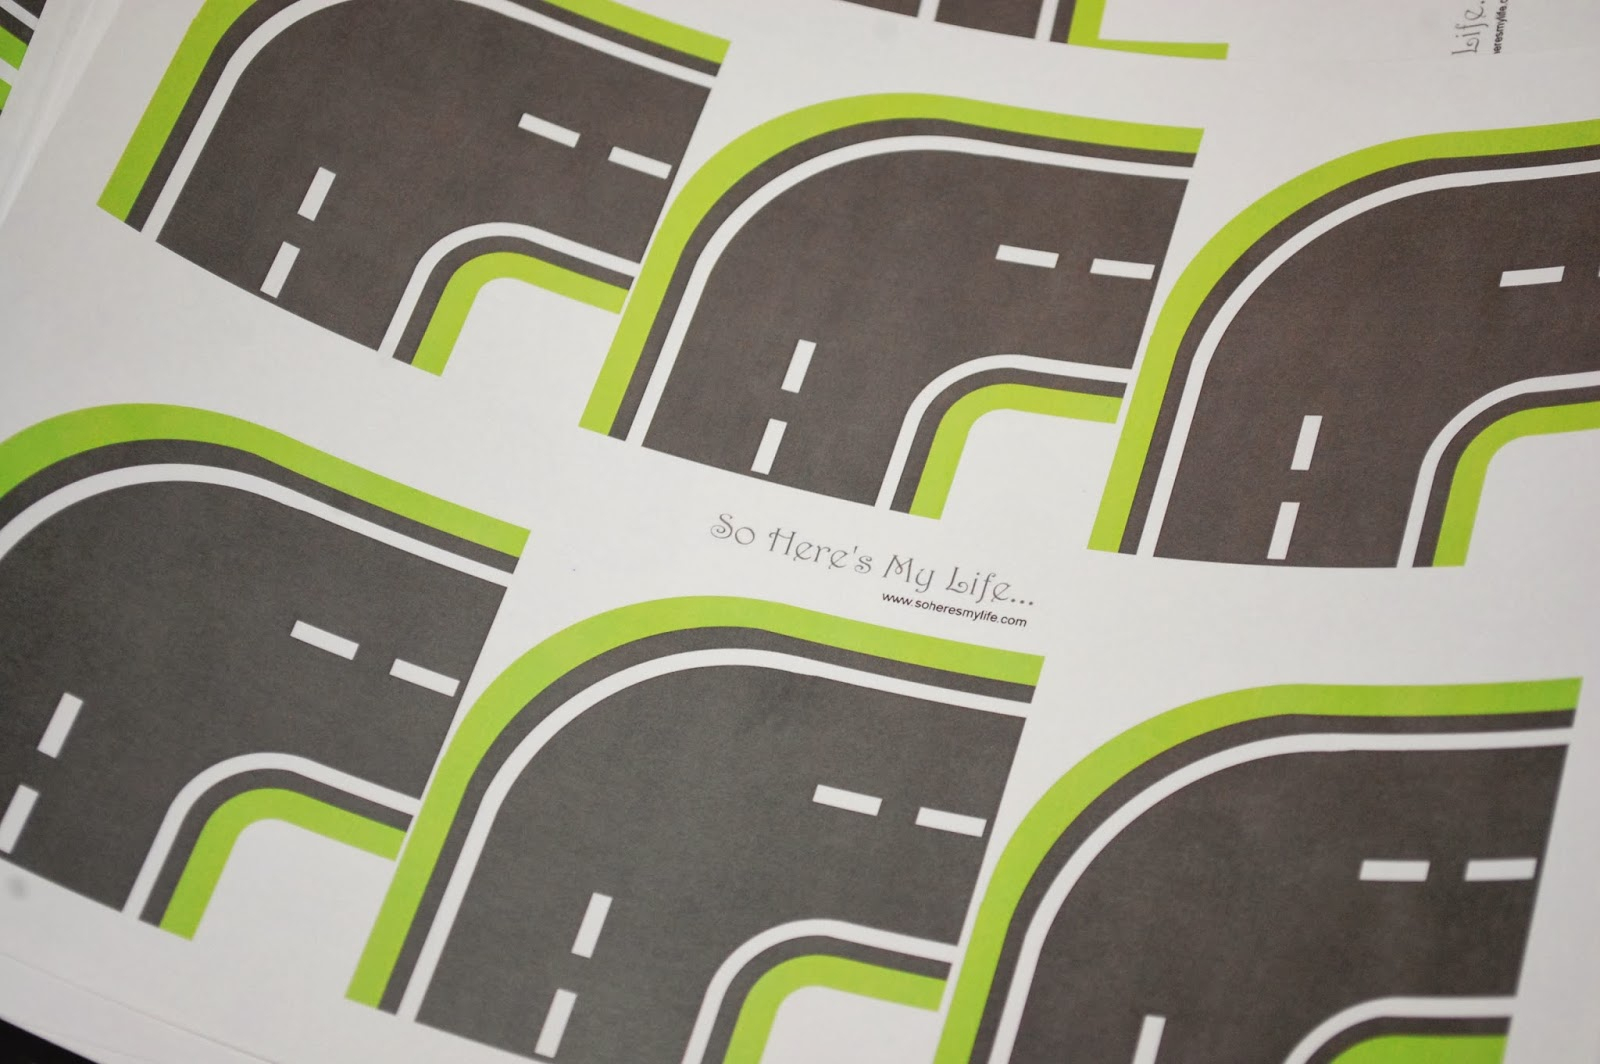 Printable Roads For Kids' Toy Cars | So Here's My Life - Free Printable Road Maps For Kids